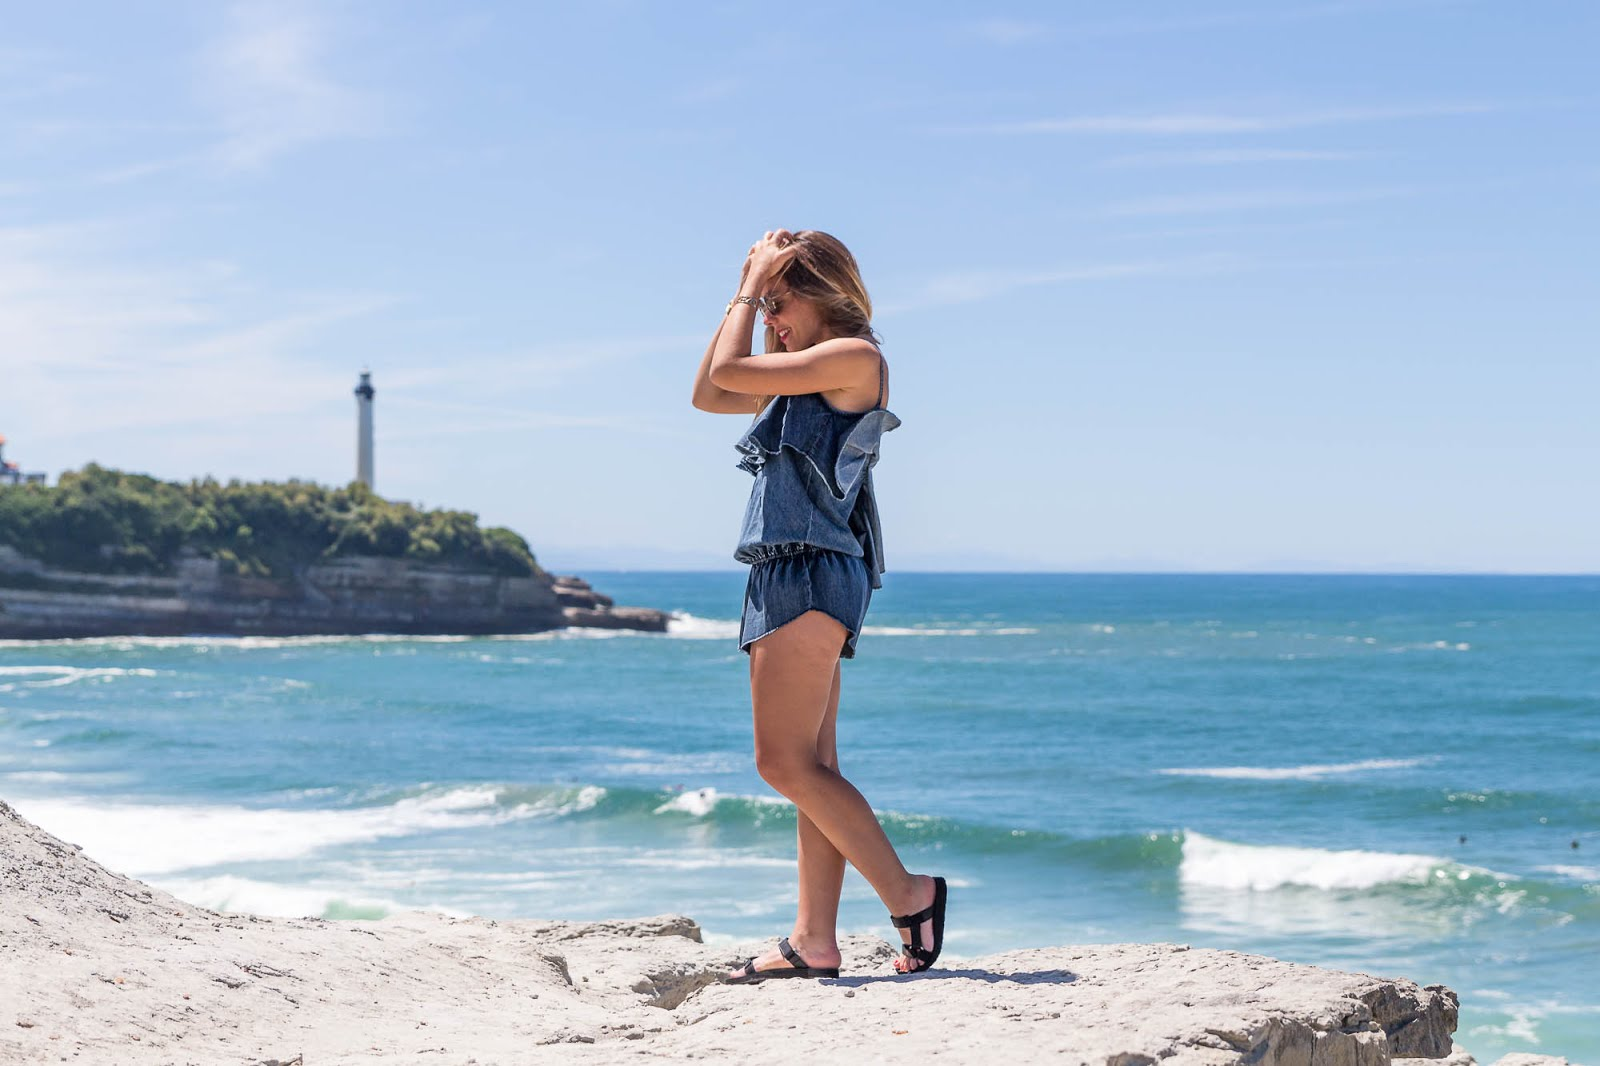 Blog mode sud ouest biarritz